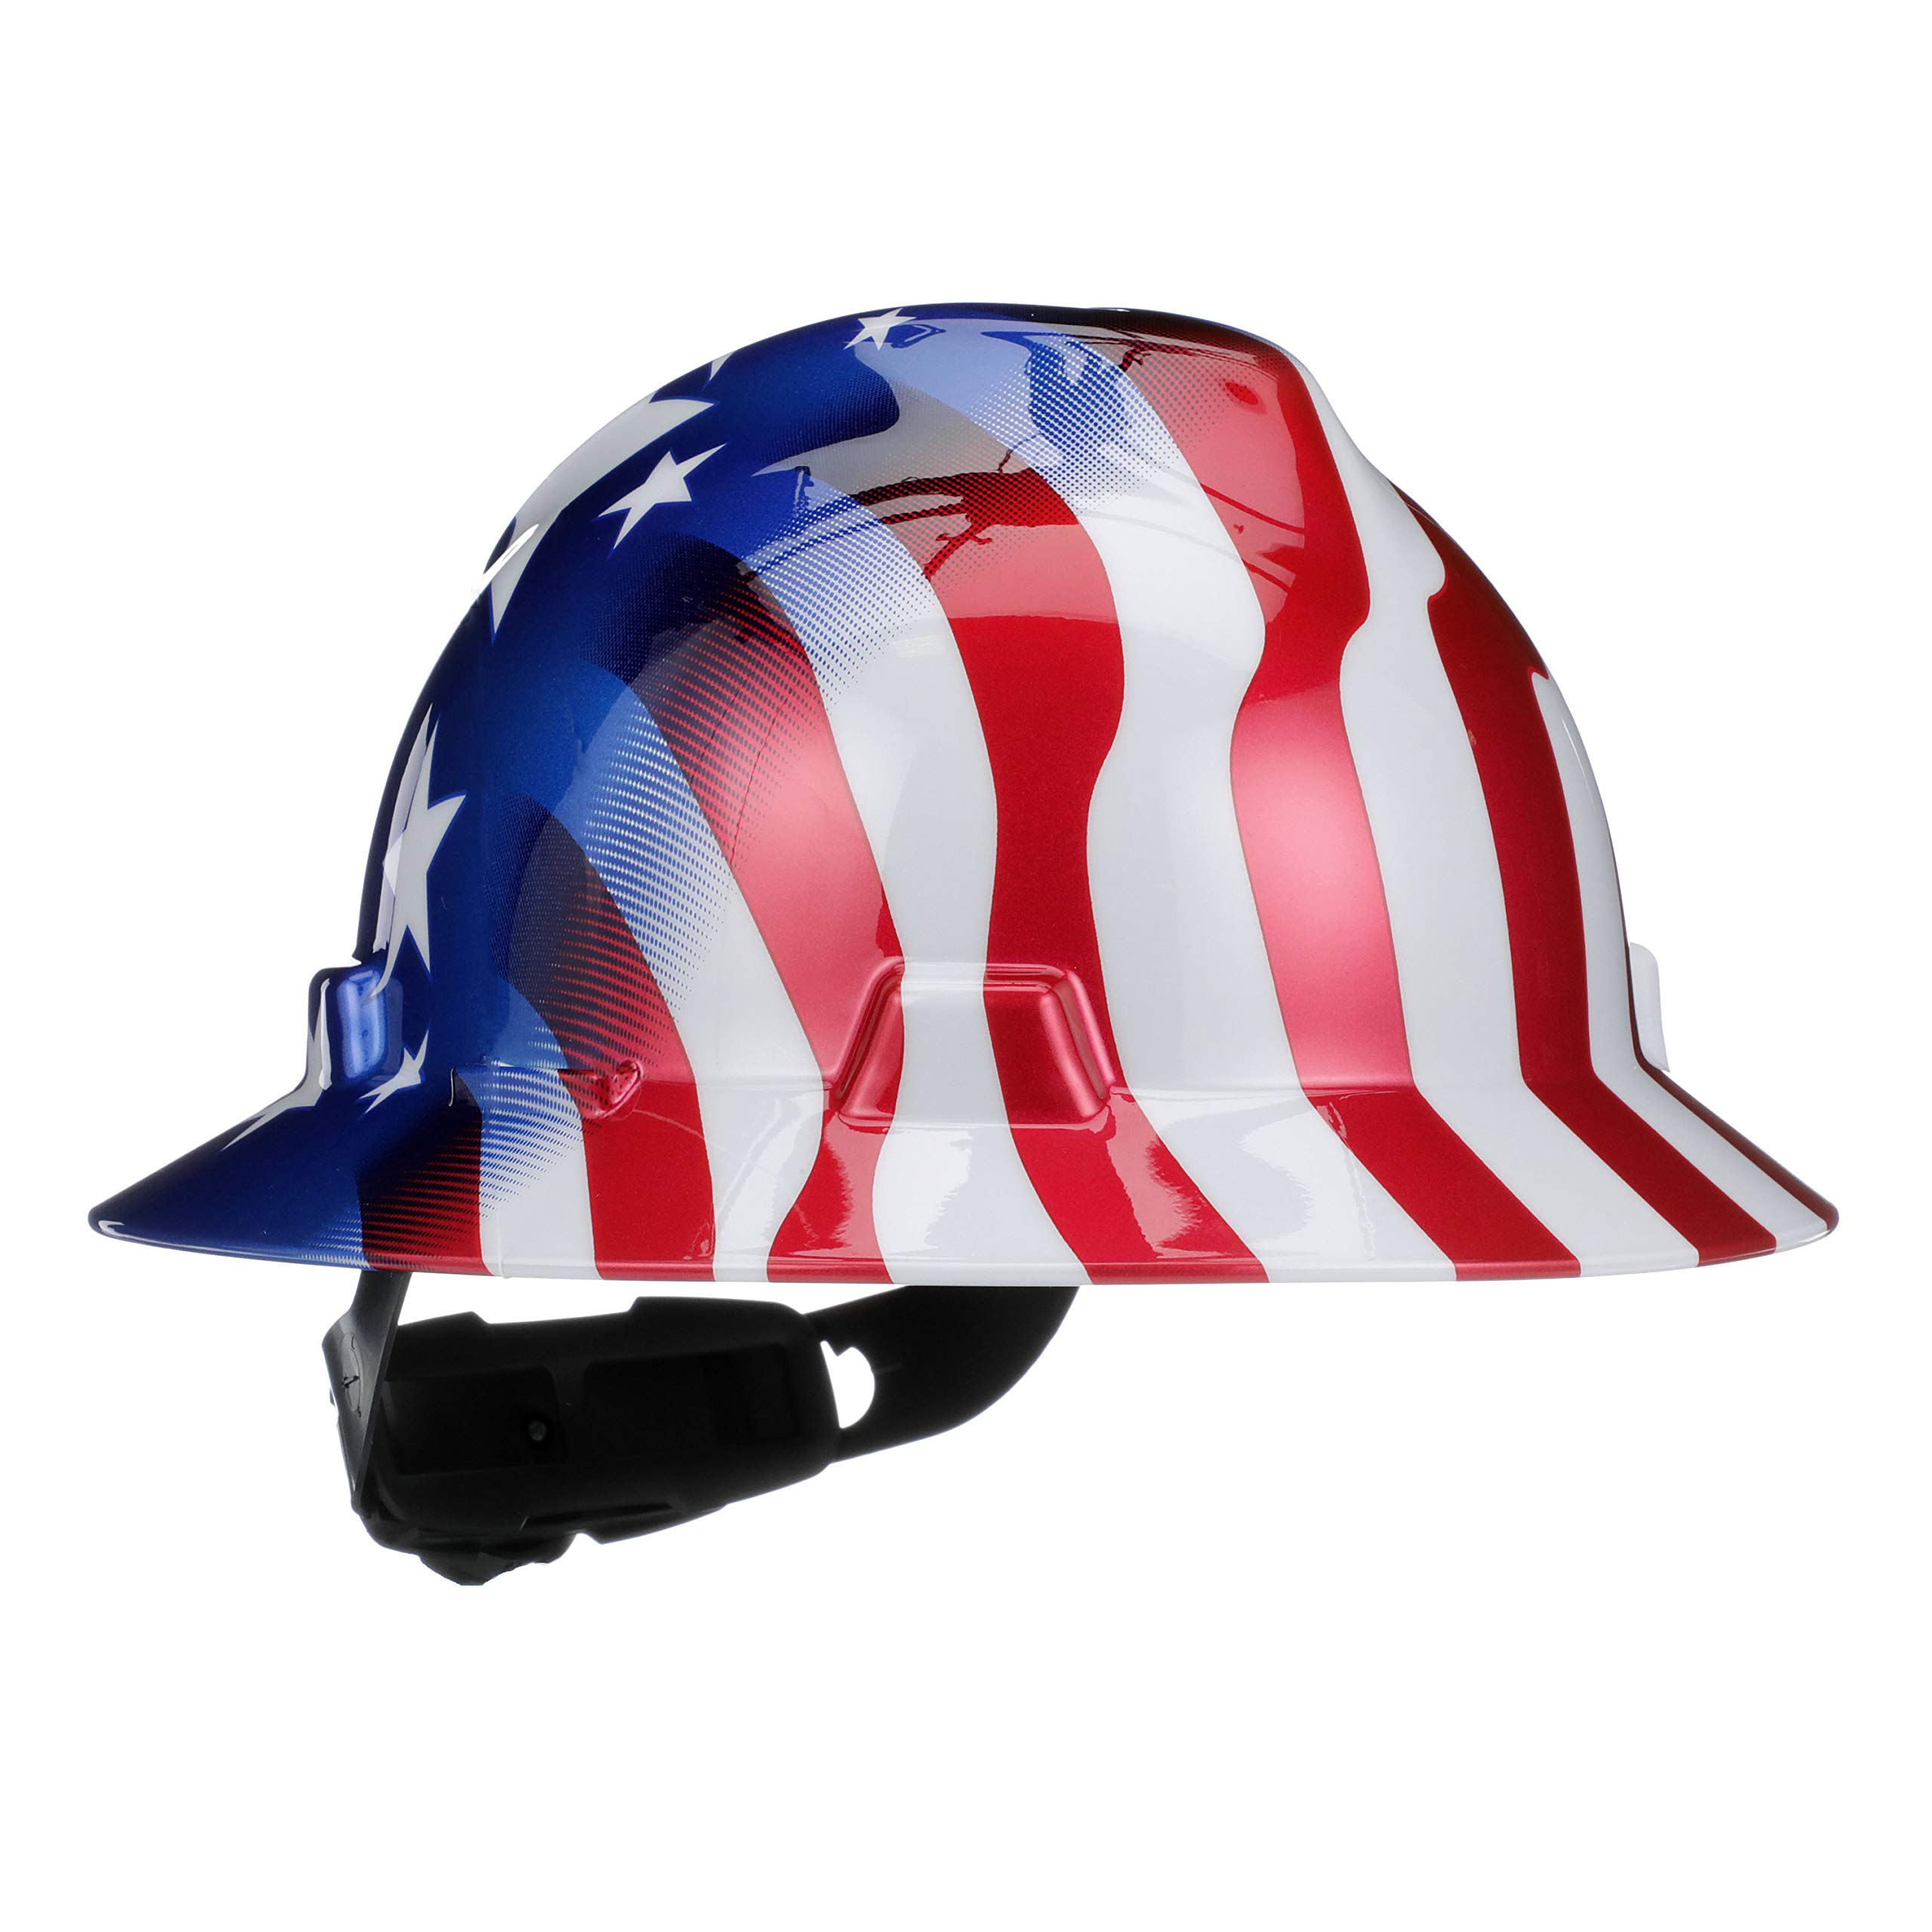 MSA 10071157 V-Gard Full-Brim Hard Hat, Stars & Strips,, Capacity, Volume, Polyethylene, Standard, Red/White/Blue